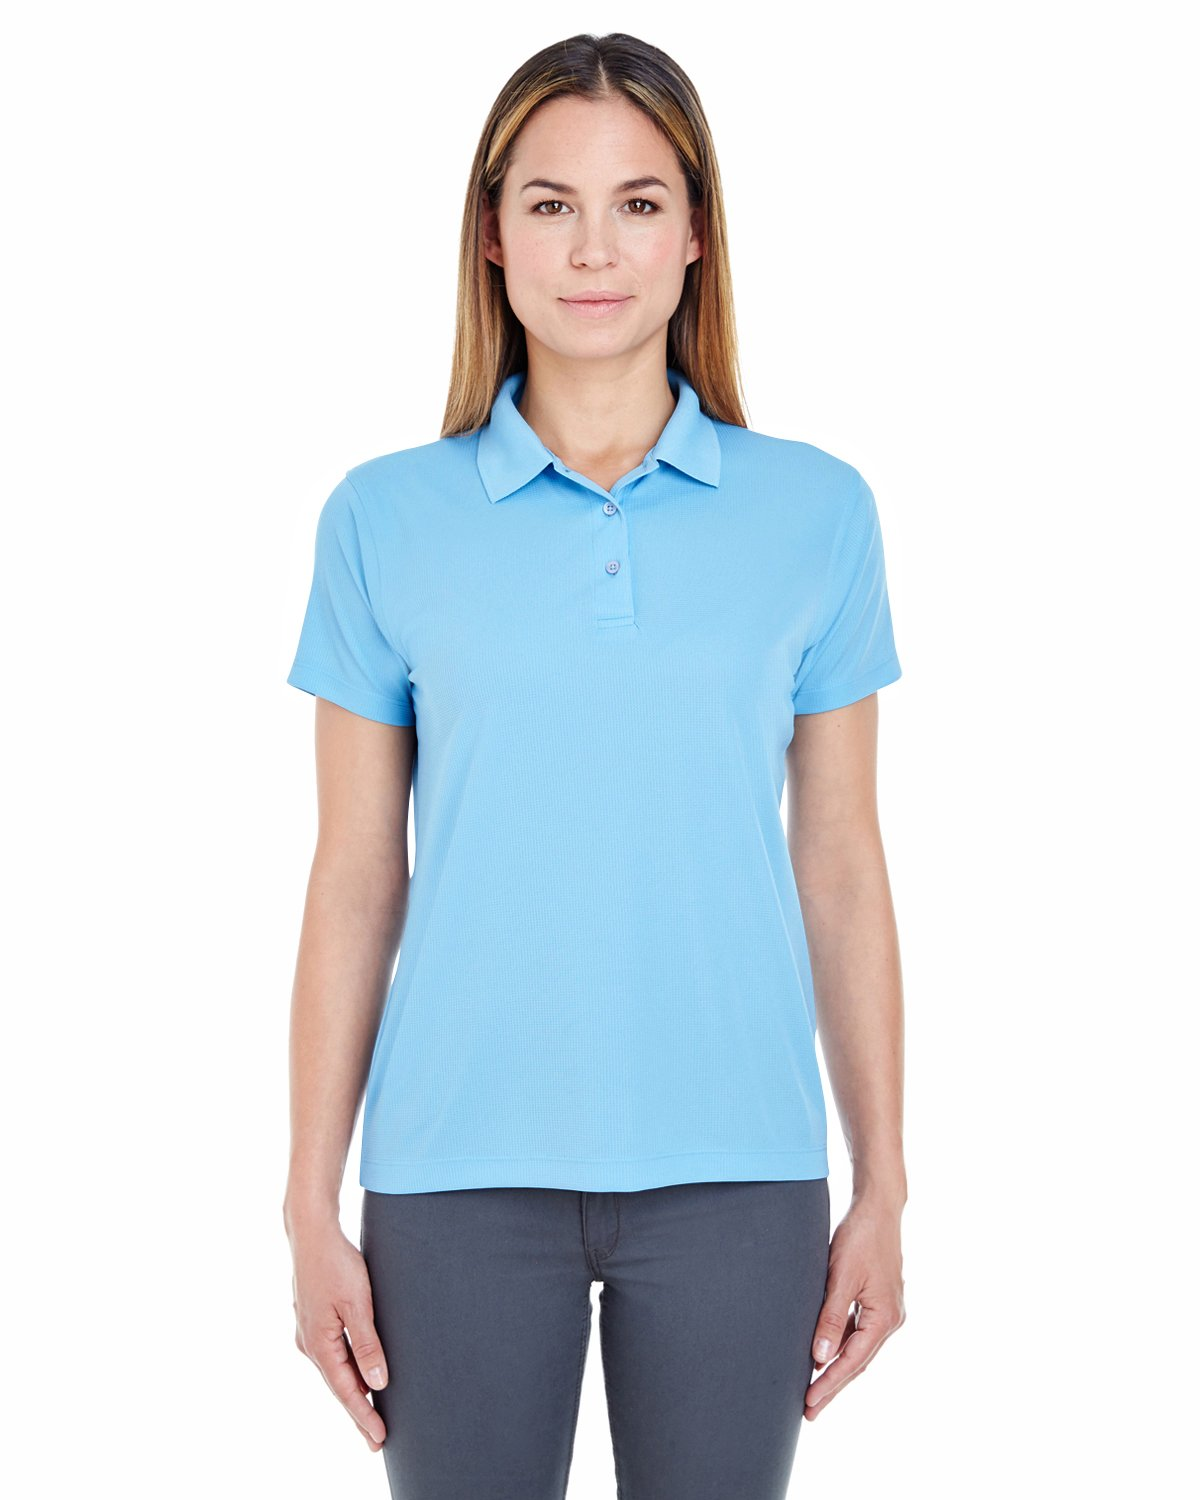 UltraClub Ladies' Cool & Dry Jacquard Performance Polo Shirt, Columbia Blue, S